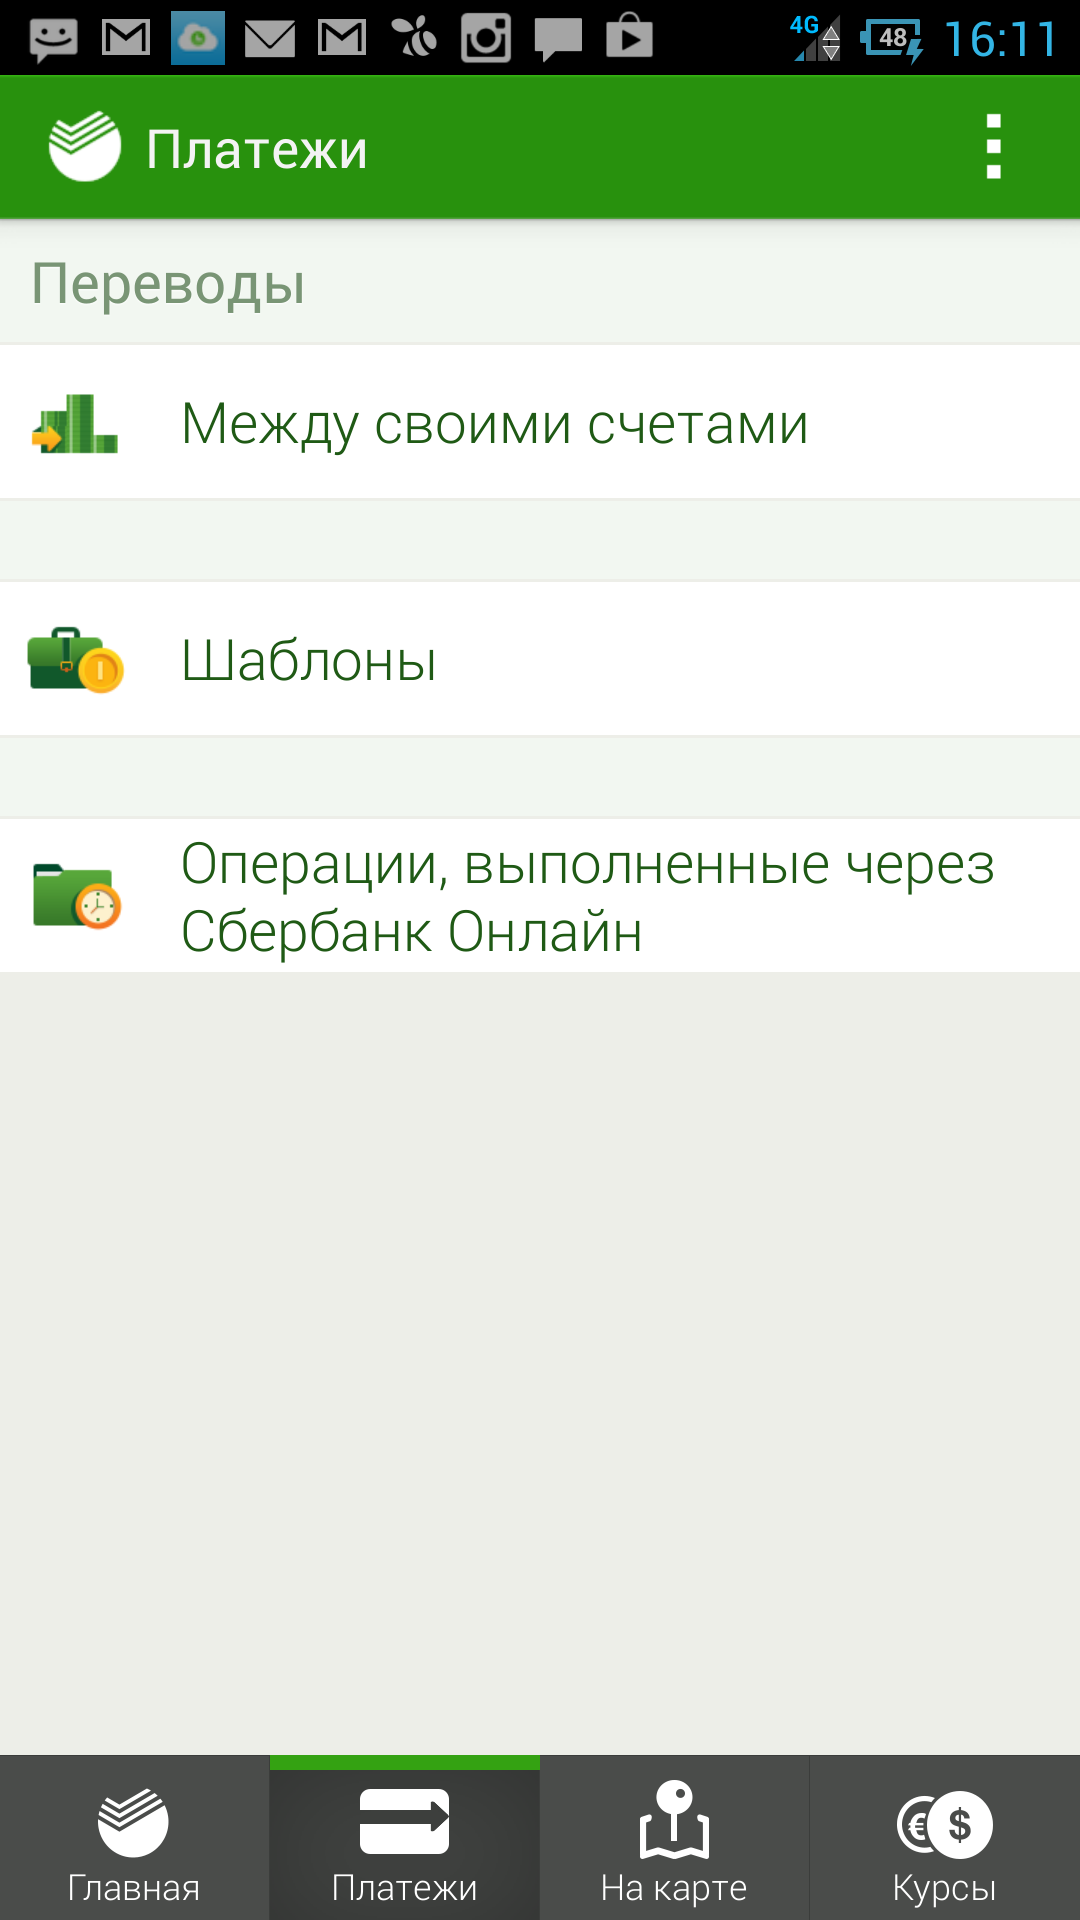 Screenshot_2014-08-05-16-11-32